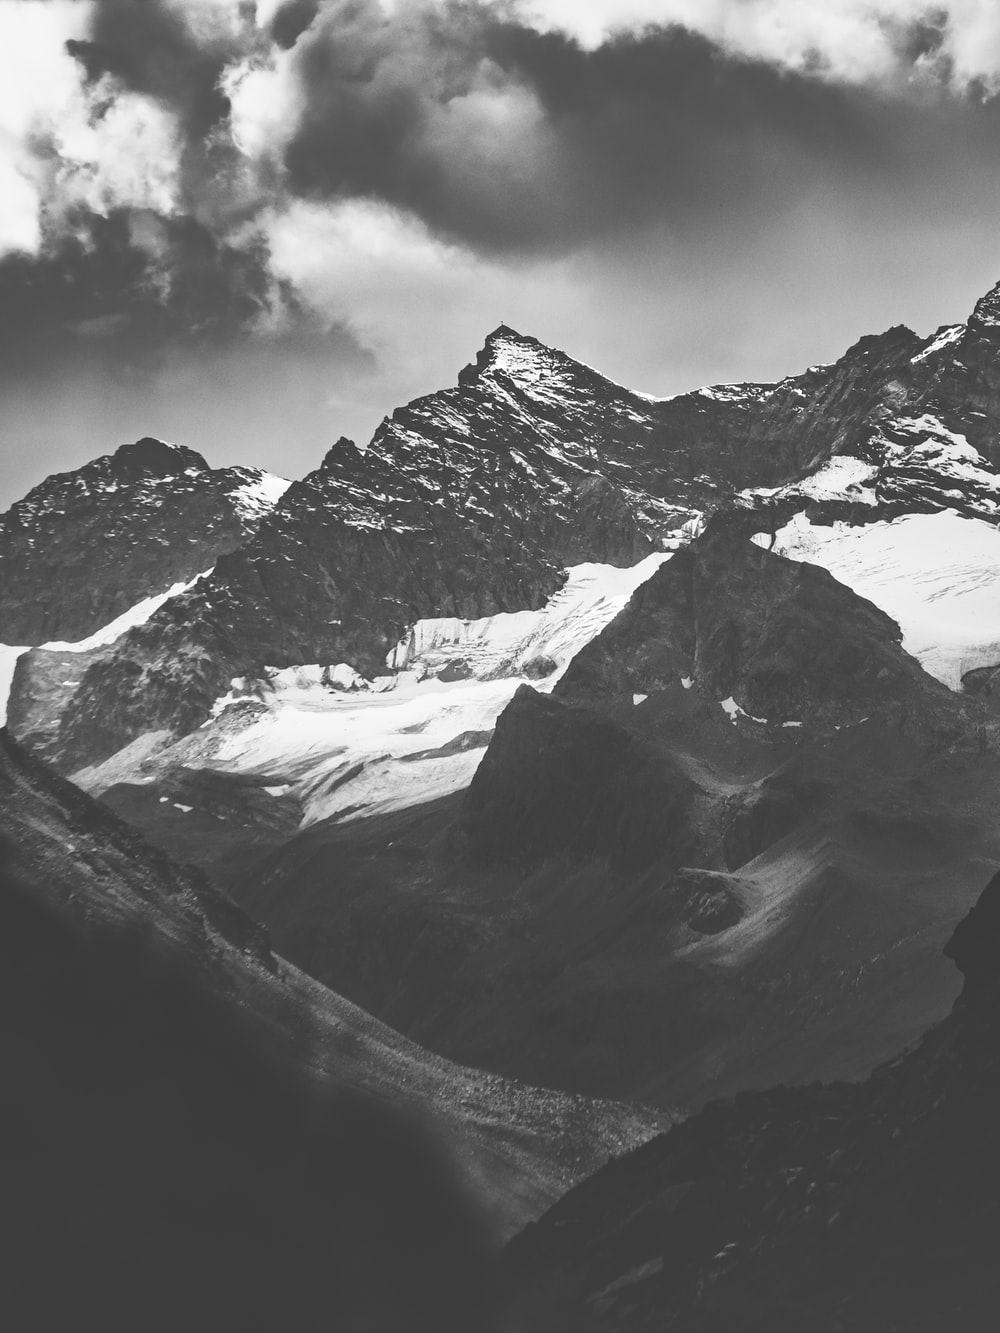 grayscale photography of mountains with snow